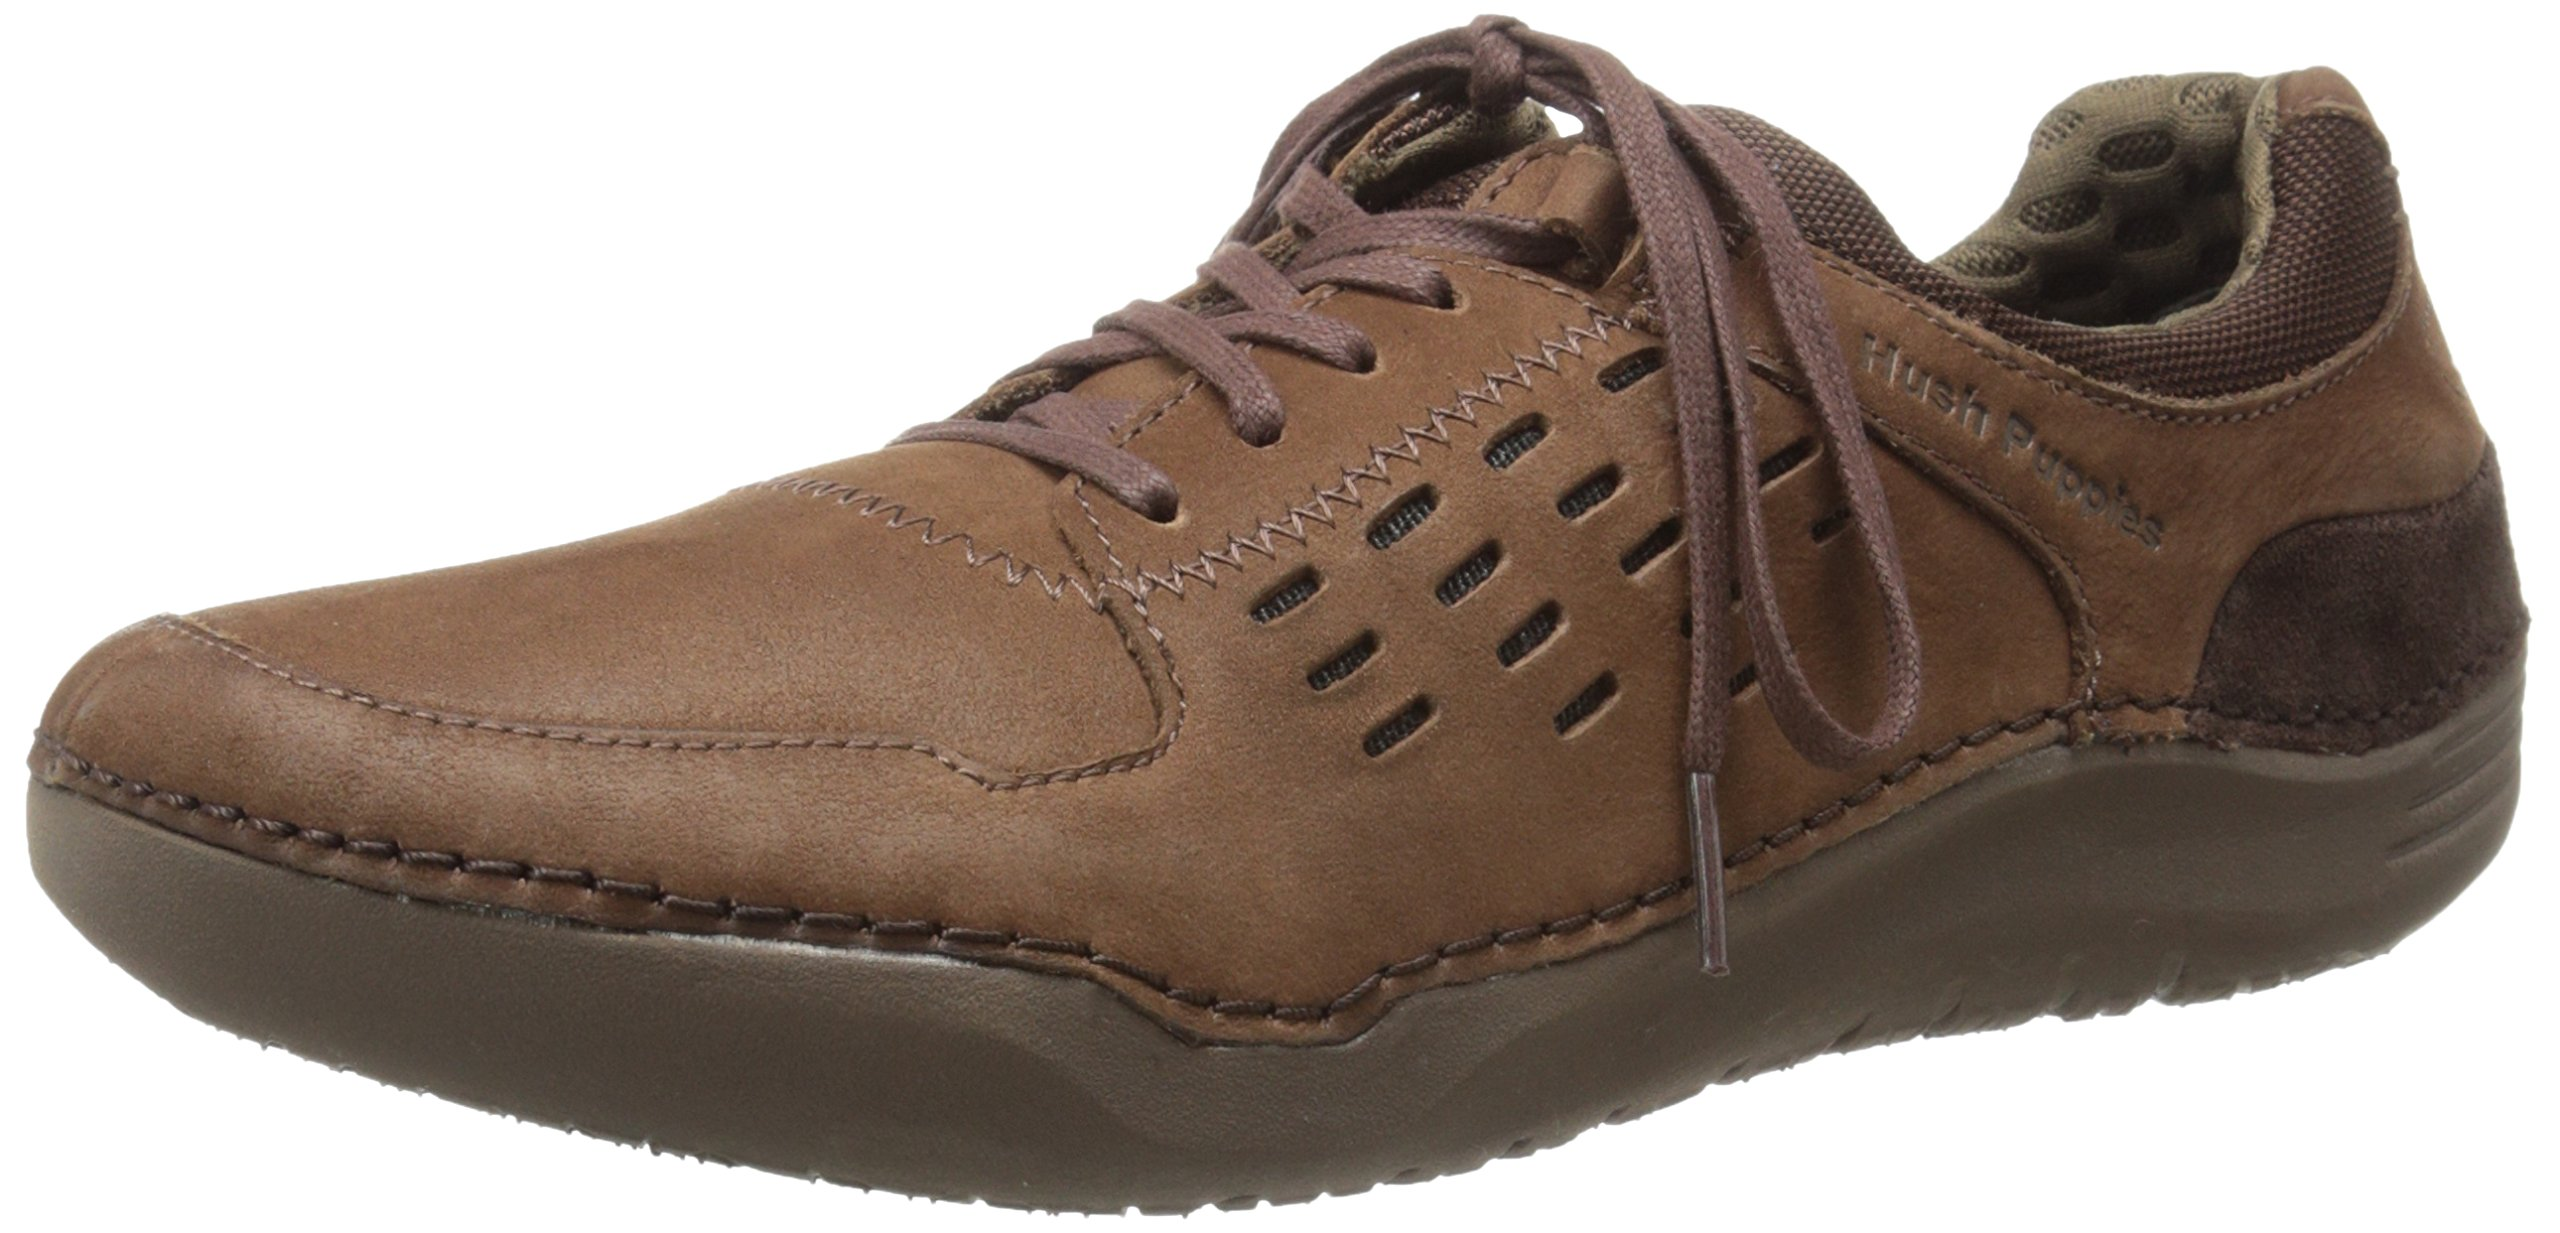 Hush Puppies Men's Hinton Method Casual Sneaker, Brown Leather, 13 M US